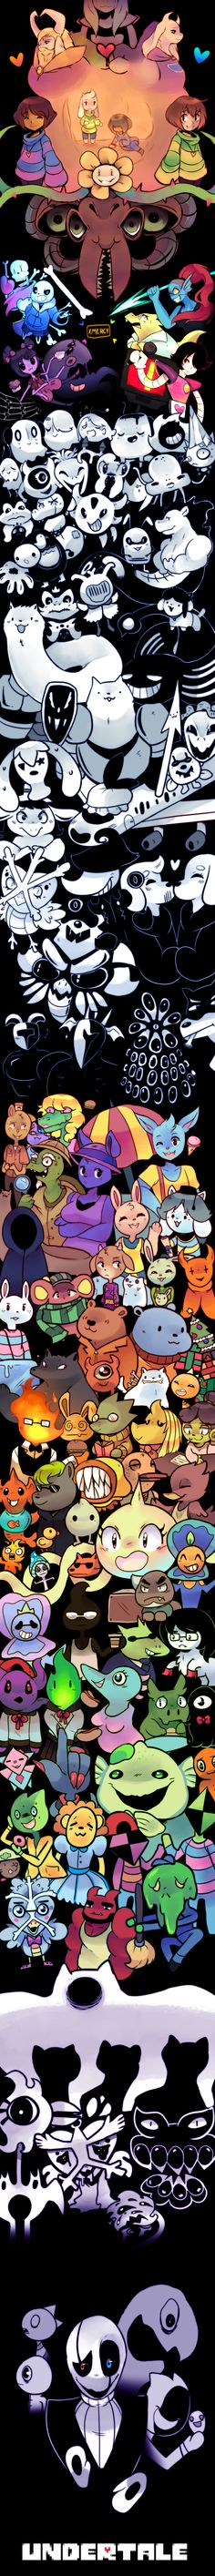 (∩ ͡° ͜ʖ ͡°)⊃━☆゚. * ・ 。゚ undertale || all characters; pacifist, neutral & genocide